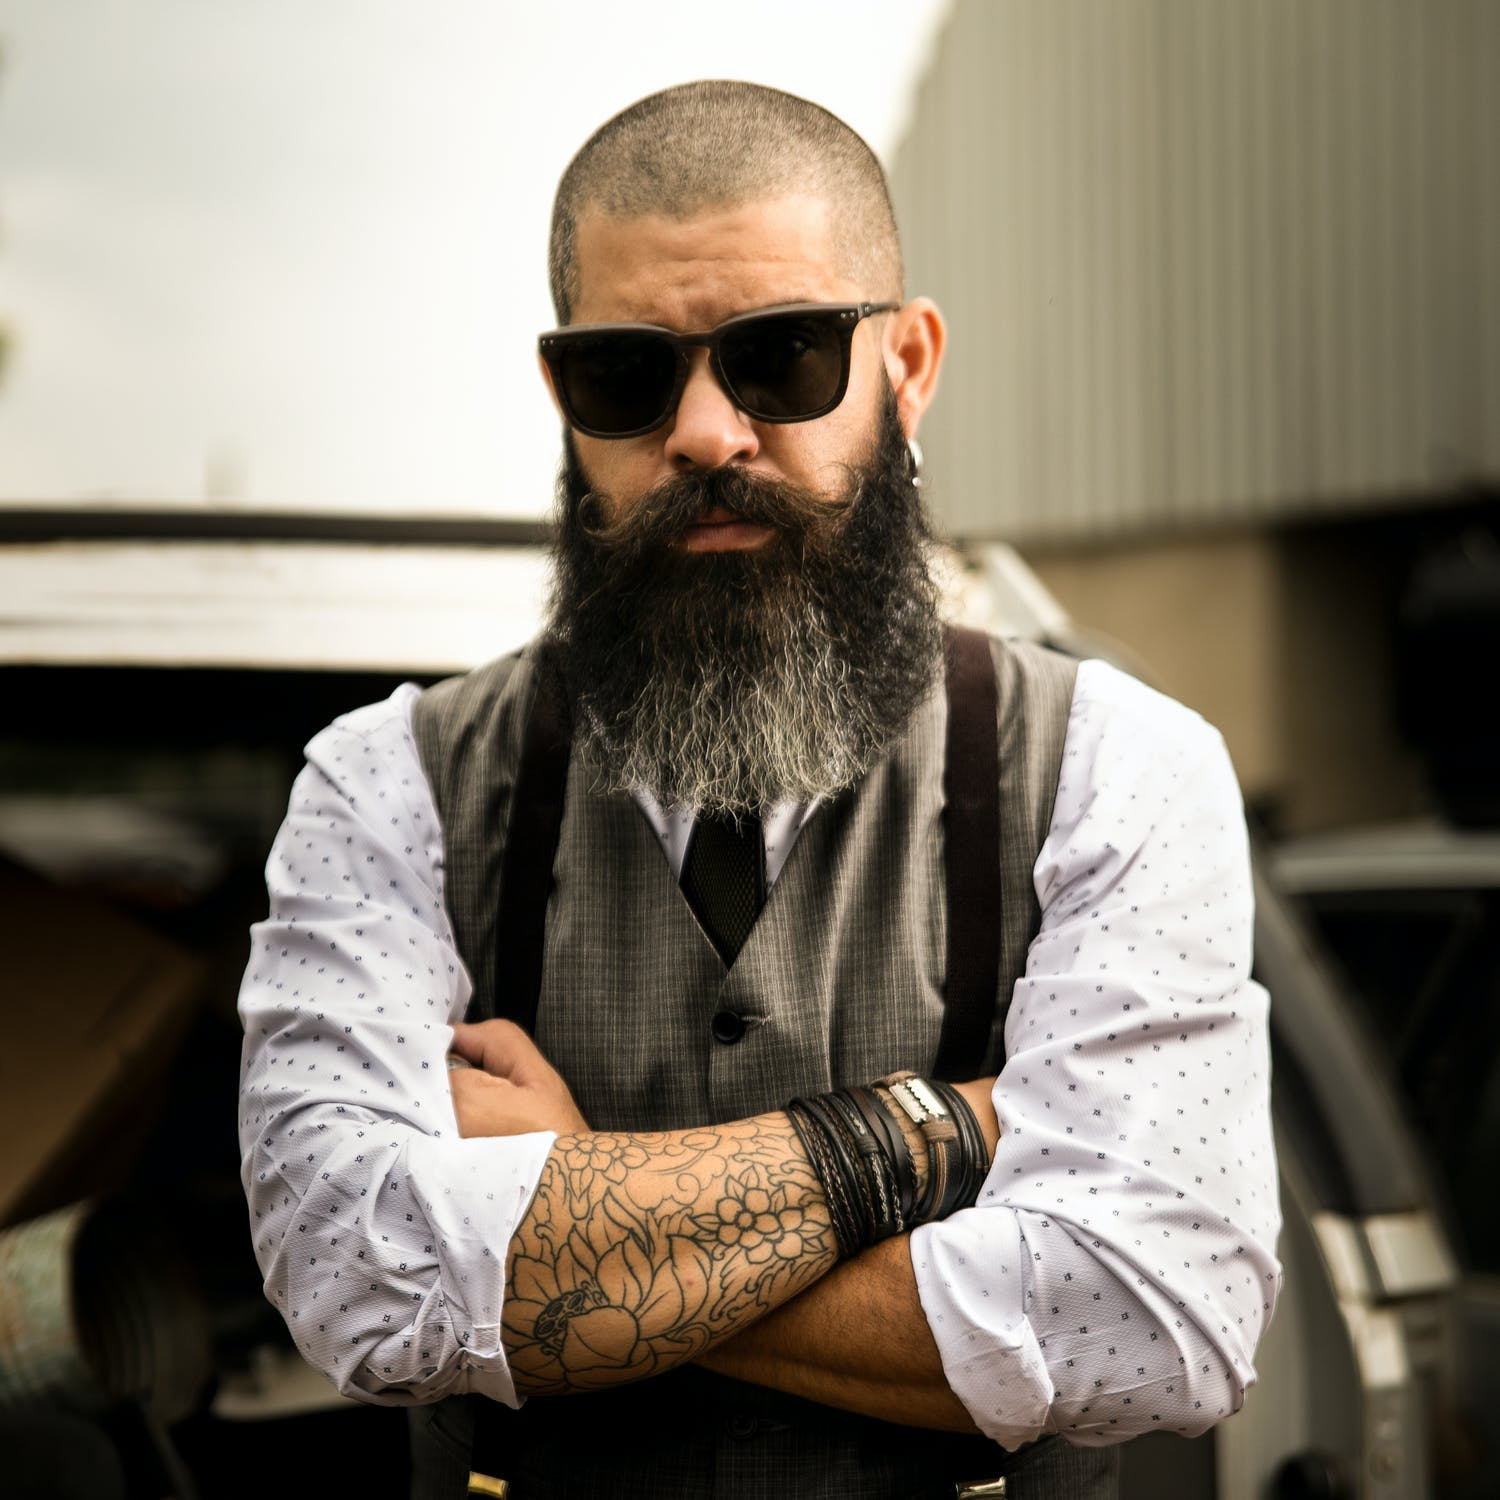 SIGNIFICANCE OF BEARD BUTTER MAKE YOUR BEARD BUTTER IN THIS QUARANTINE